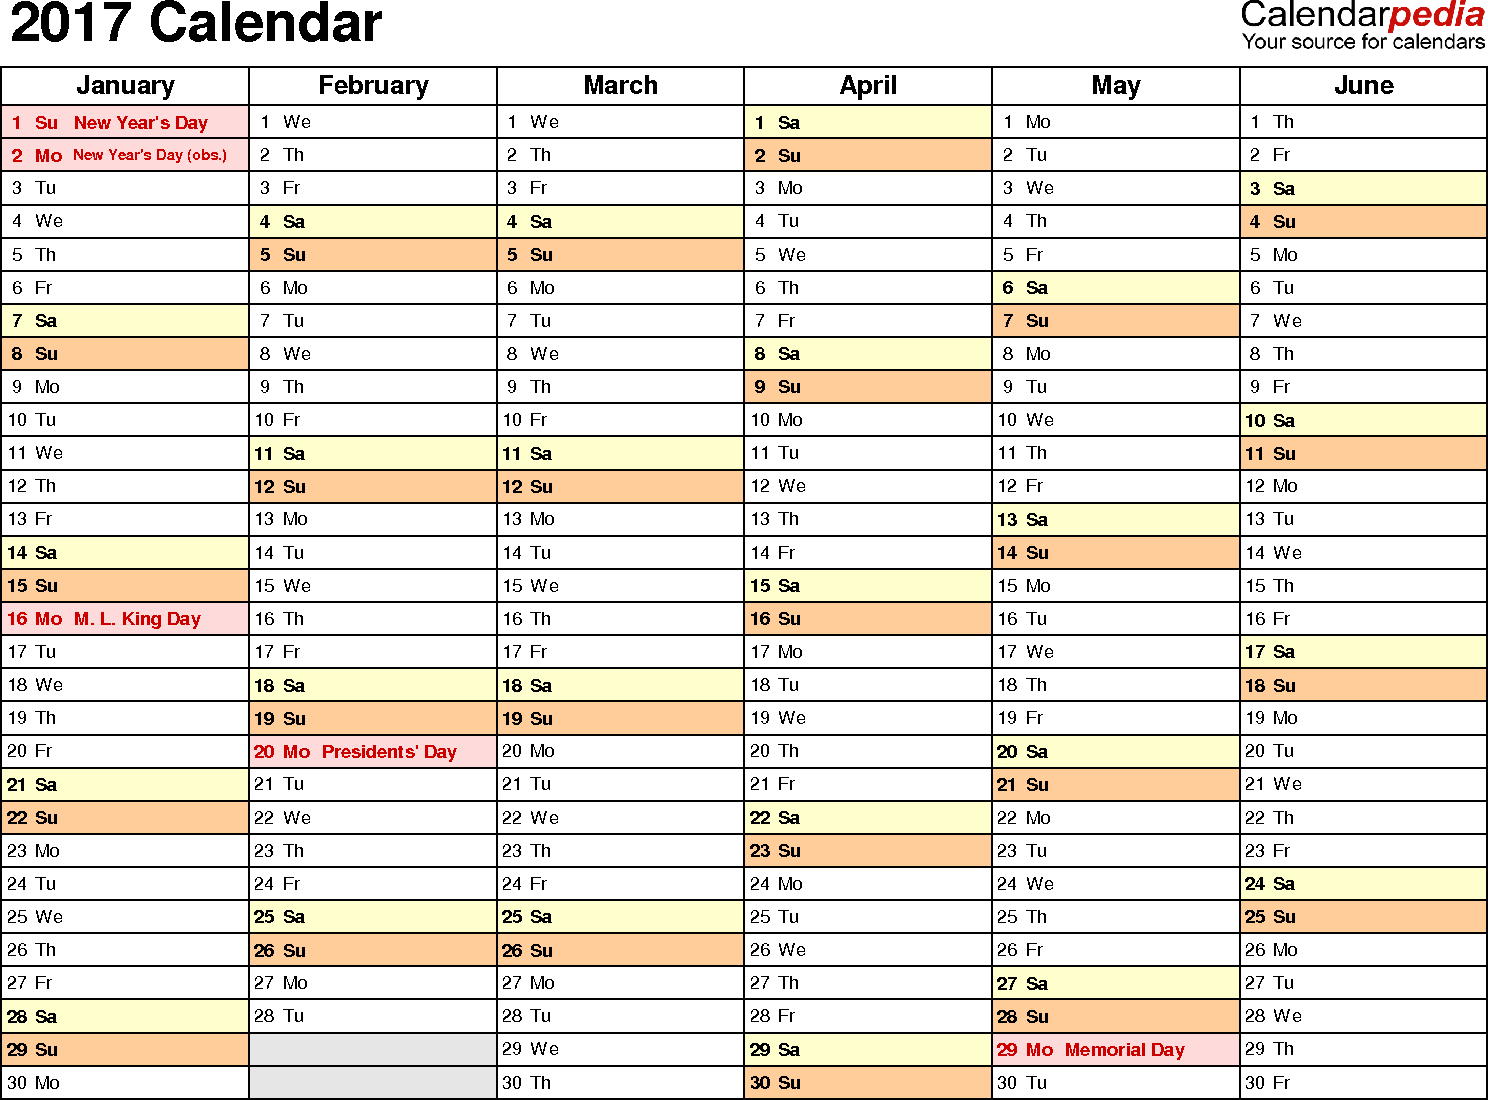 Ediblewildsus  Unusual  Calendar  Download  Free Printable Excel Templates Xls With Lovely Template   Calendar For Excel Months Horizontally  Pages Landscape Orientation With Captivating Descriptive Statistics Excel Also Adding Drop Down List In Excel In Addition Creating Charts In Excel And Sumif In Excel As Well As Excel Conditional Formatting Based On Another Cell Additionally Free Microsoft Excel Download From Calendarpediacom With Ediblewildsus  Lovely  Calendar  Download  Free Printable Excel Templates Xls With Captivating Template   Calendar For Excel Months Horizontally  Pages Landscape Orientation And Unusual Descriptive Statistics Excel Also Adding Drop Down List In Excel In Addition Creating Charts In Excel From Calendarpediacom